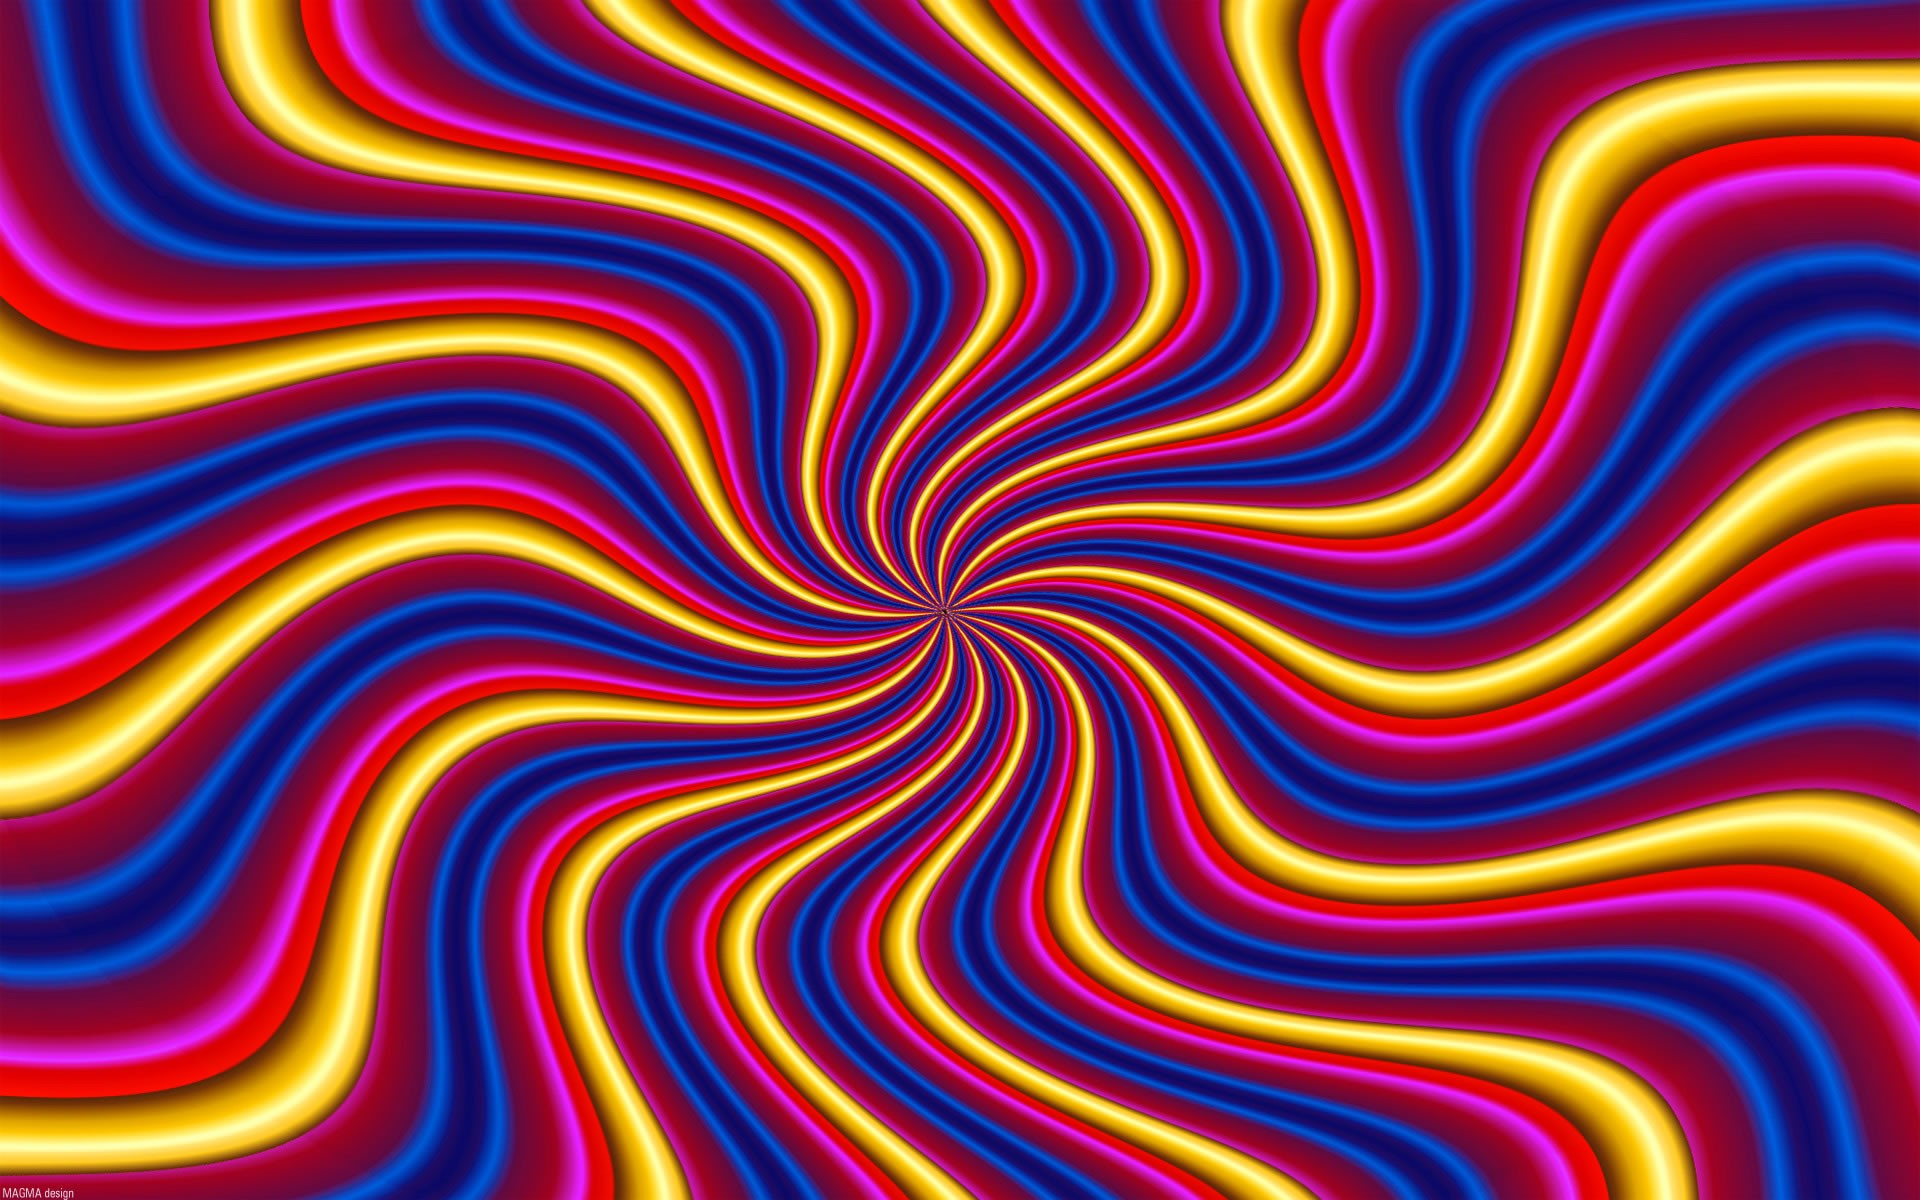 Psychedelic Computer Wallpapers Desktop Backgrounds 1920x1200 ID 1920x1200